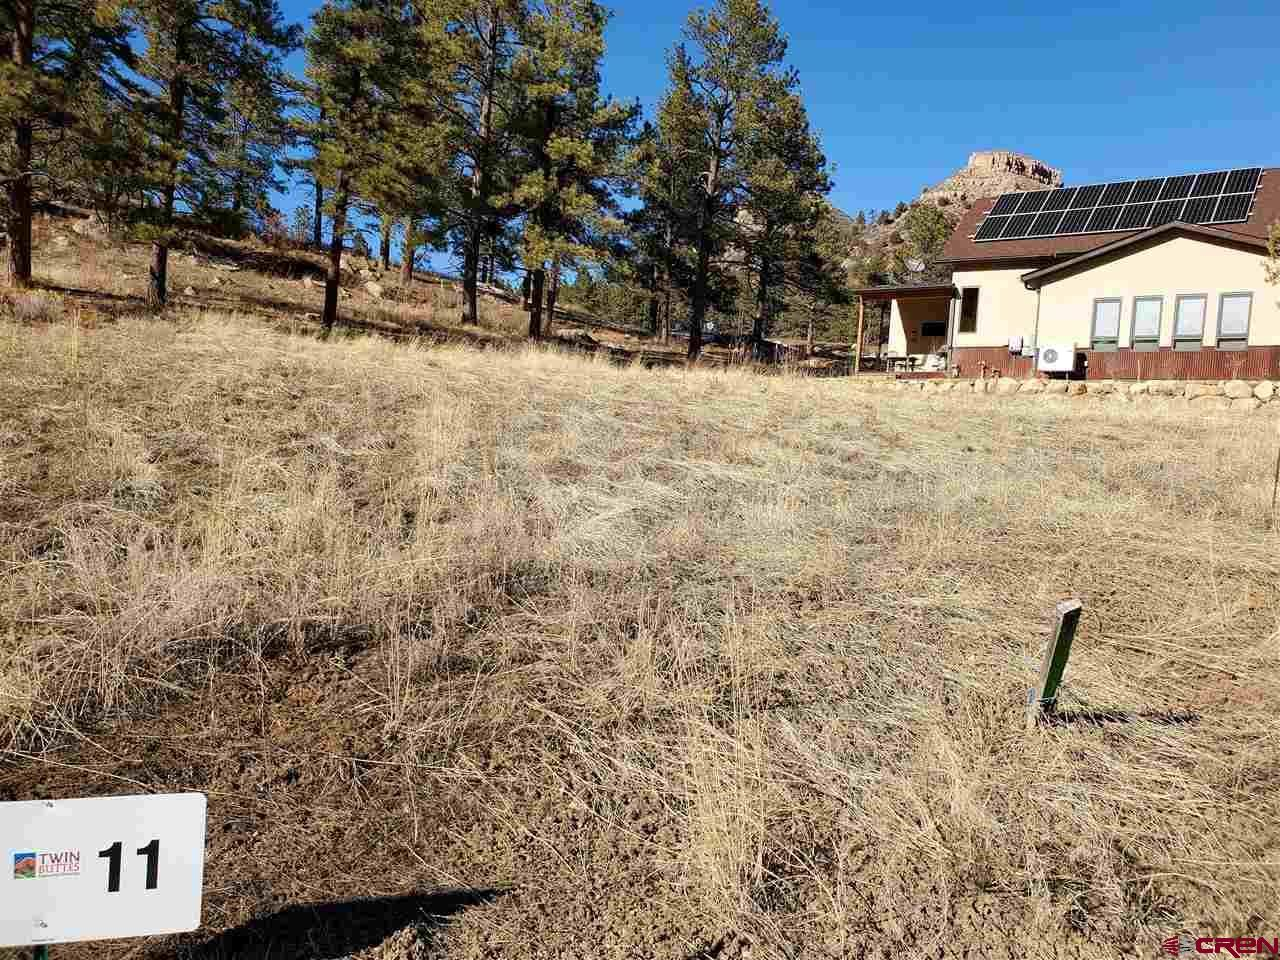 Photo of (Lot 11) 105 Larkspur Street, Durango, CO 81301 (MLS # 767035)